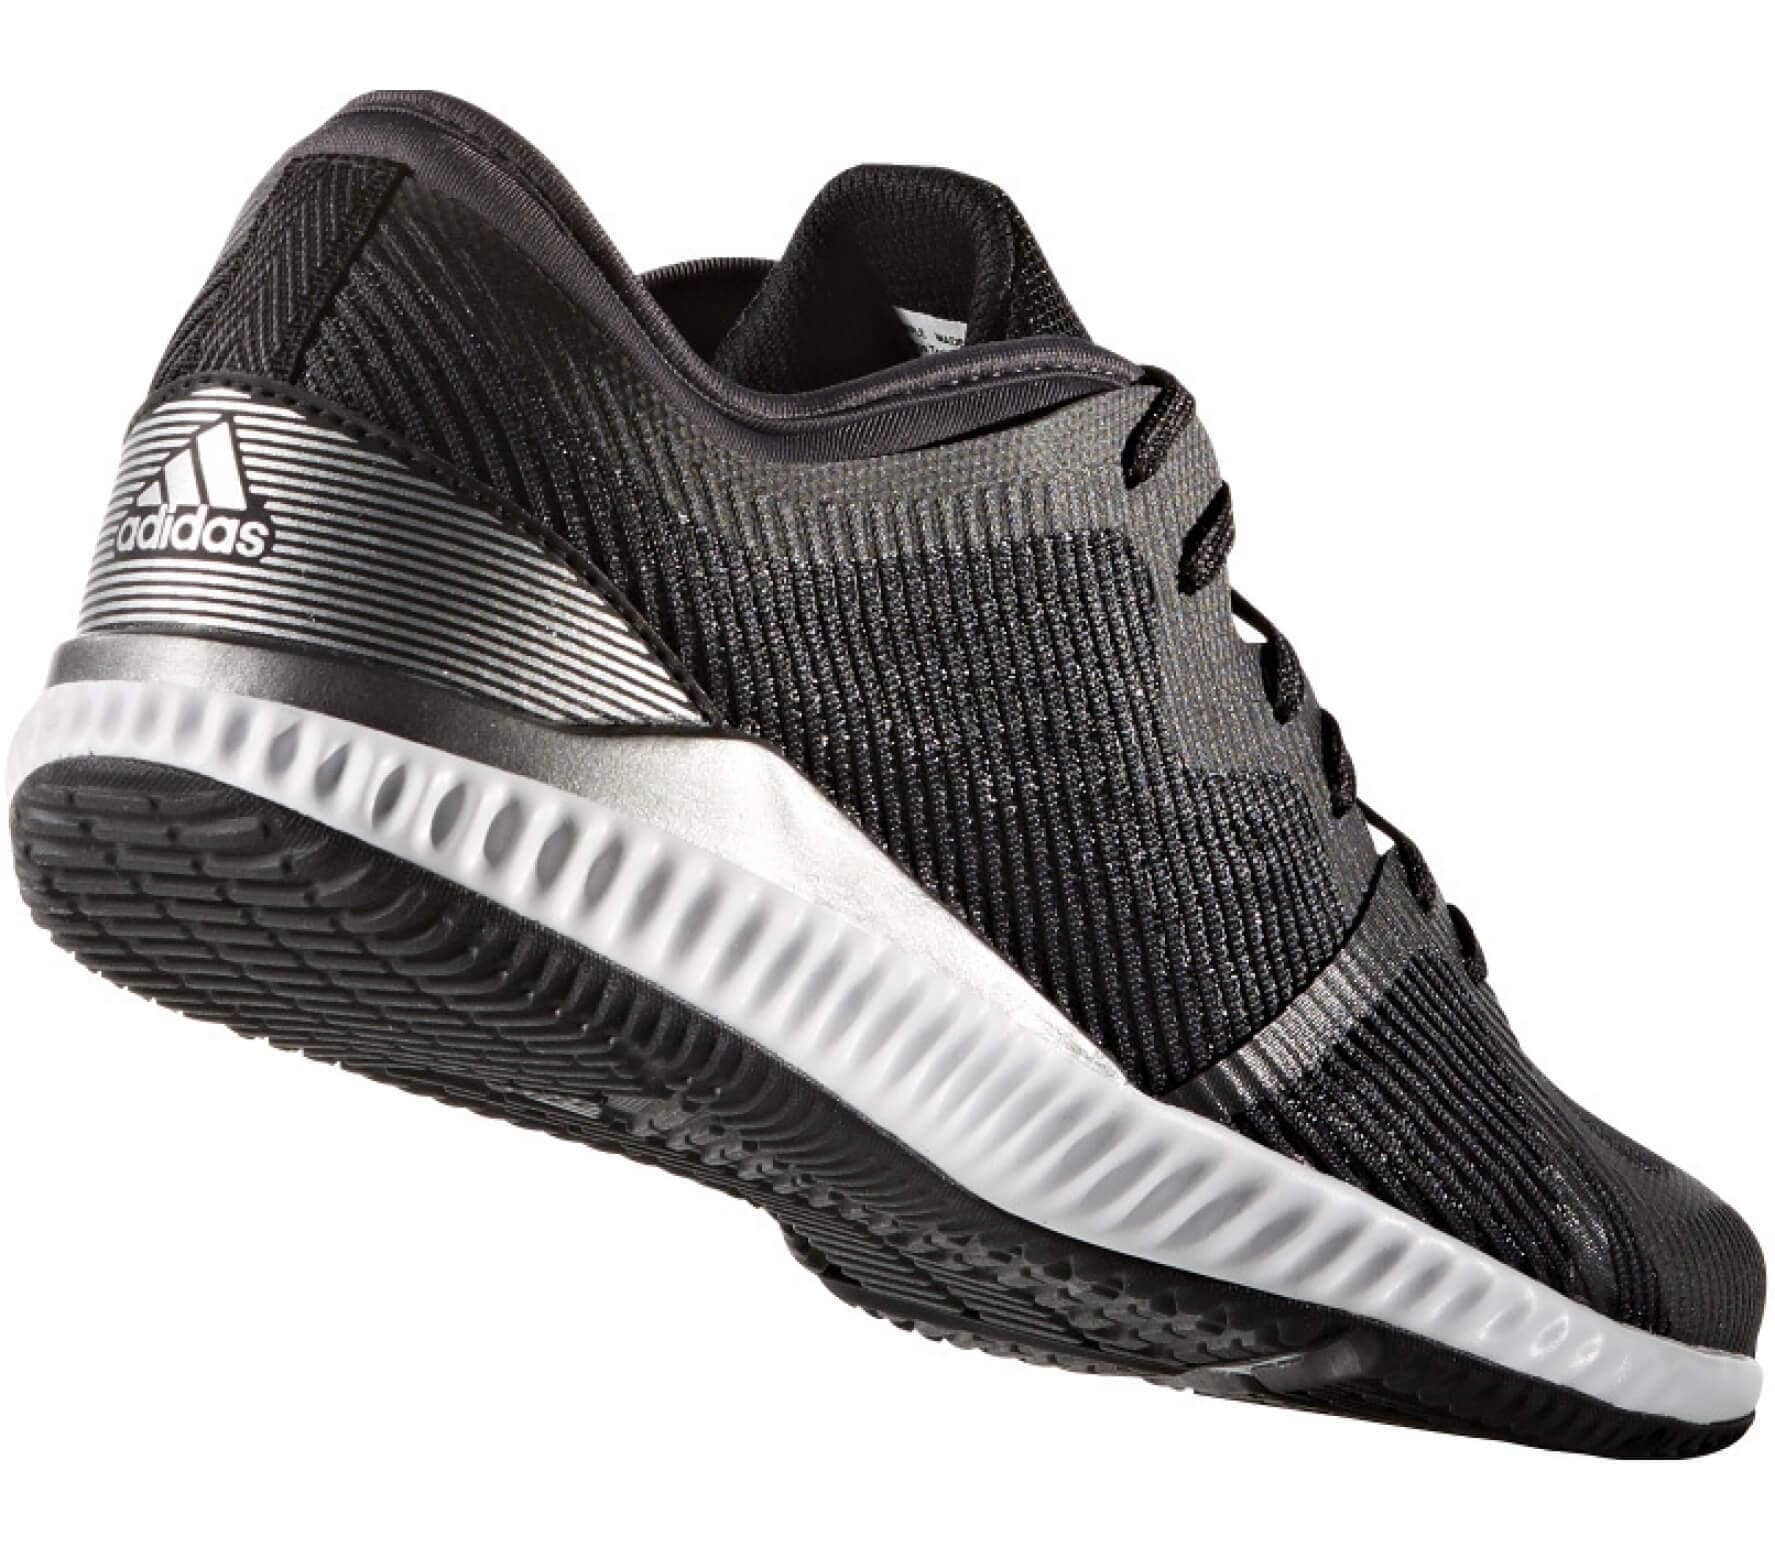 Adidas - Crazymove Bounce women s training shoes (black grey) - buy ... 29e64ba71